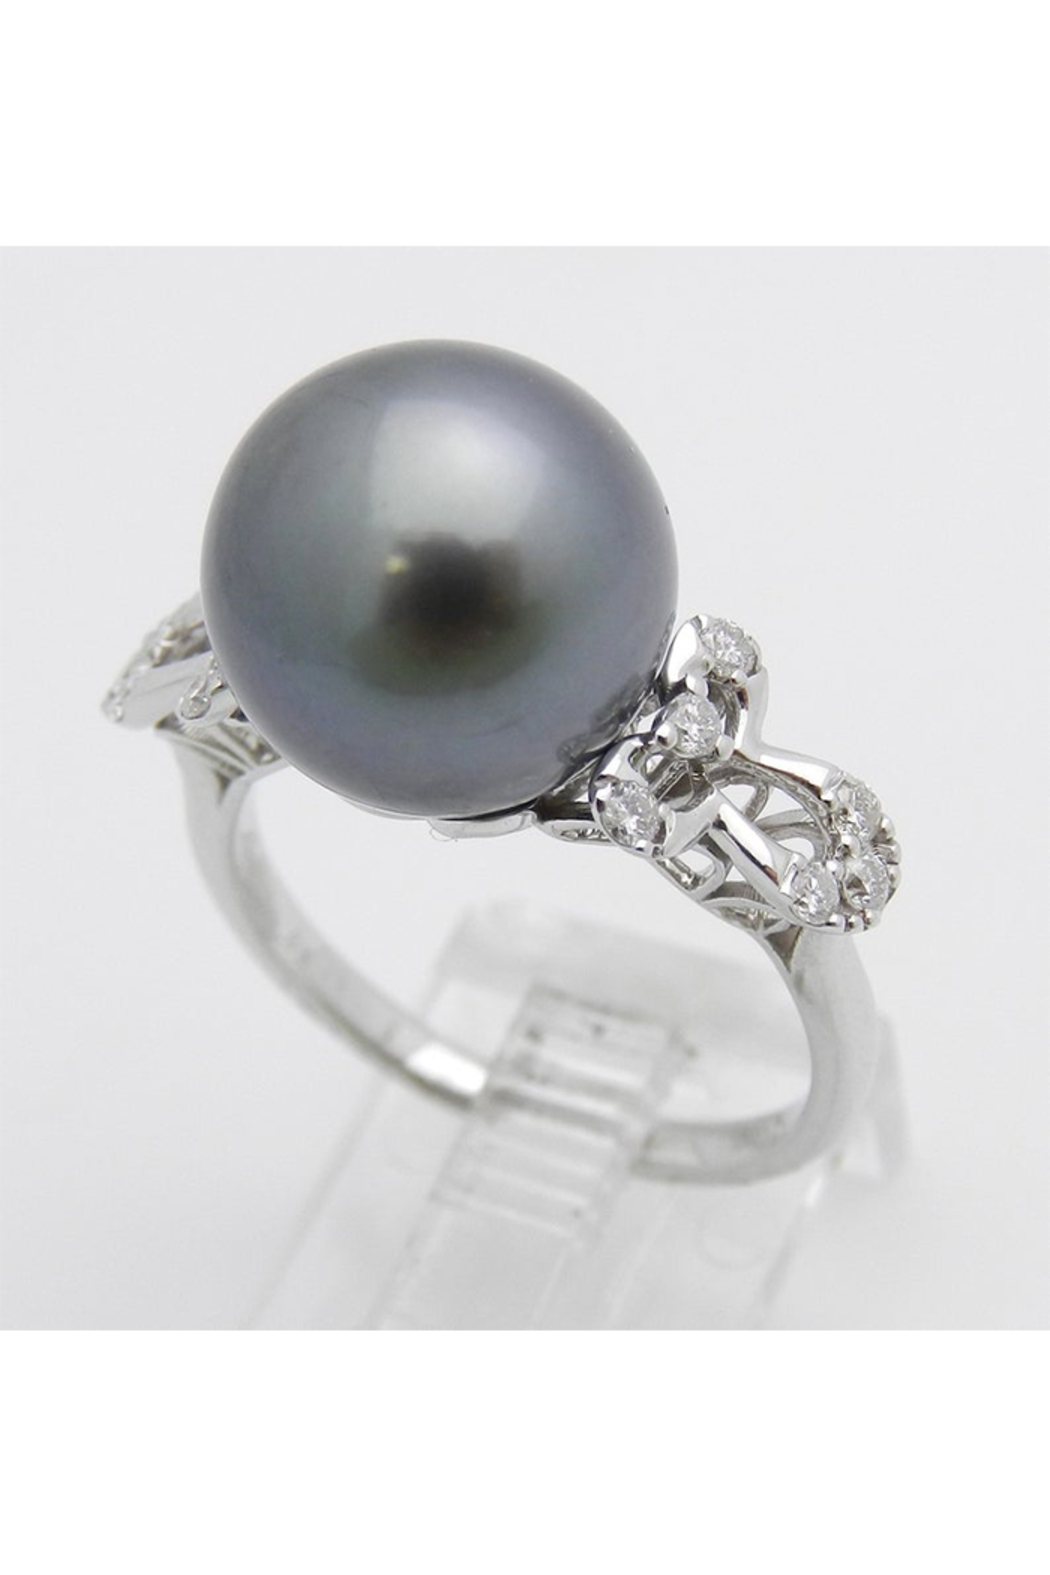 Margolin & Co 18K White Gold Diamond and Black Pearl Engagement Ring June Birthstone Size 6.5 FREE Sizing - Side Cropped Image